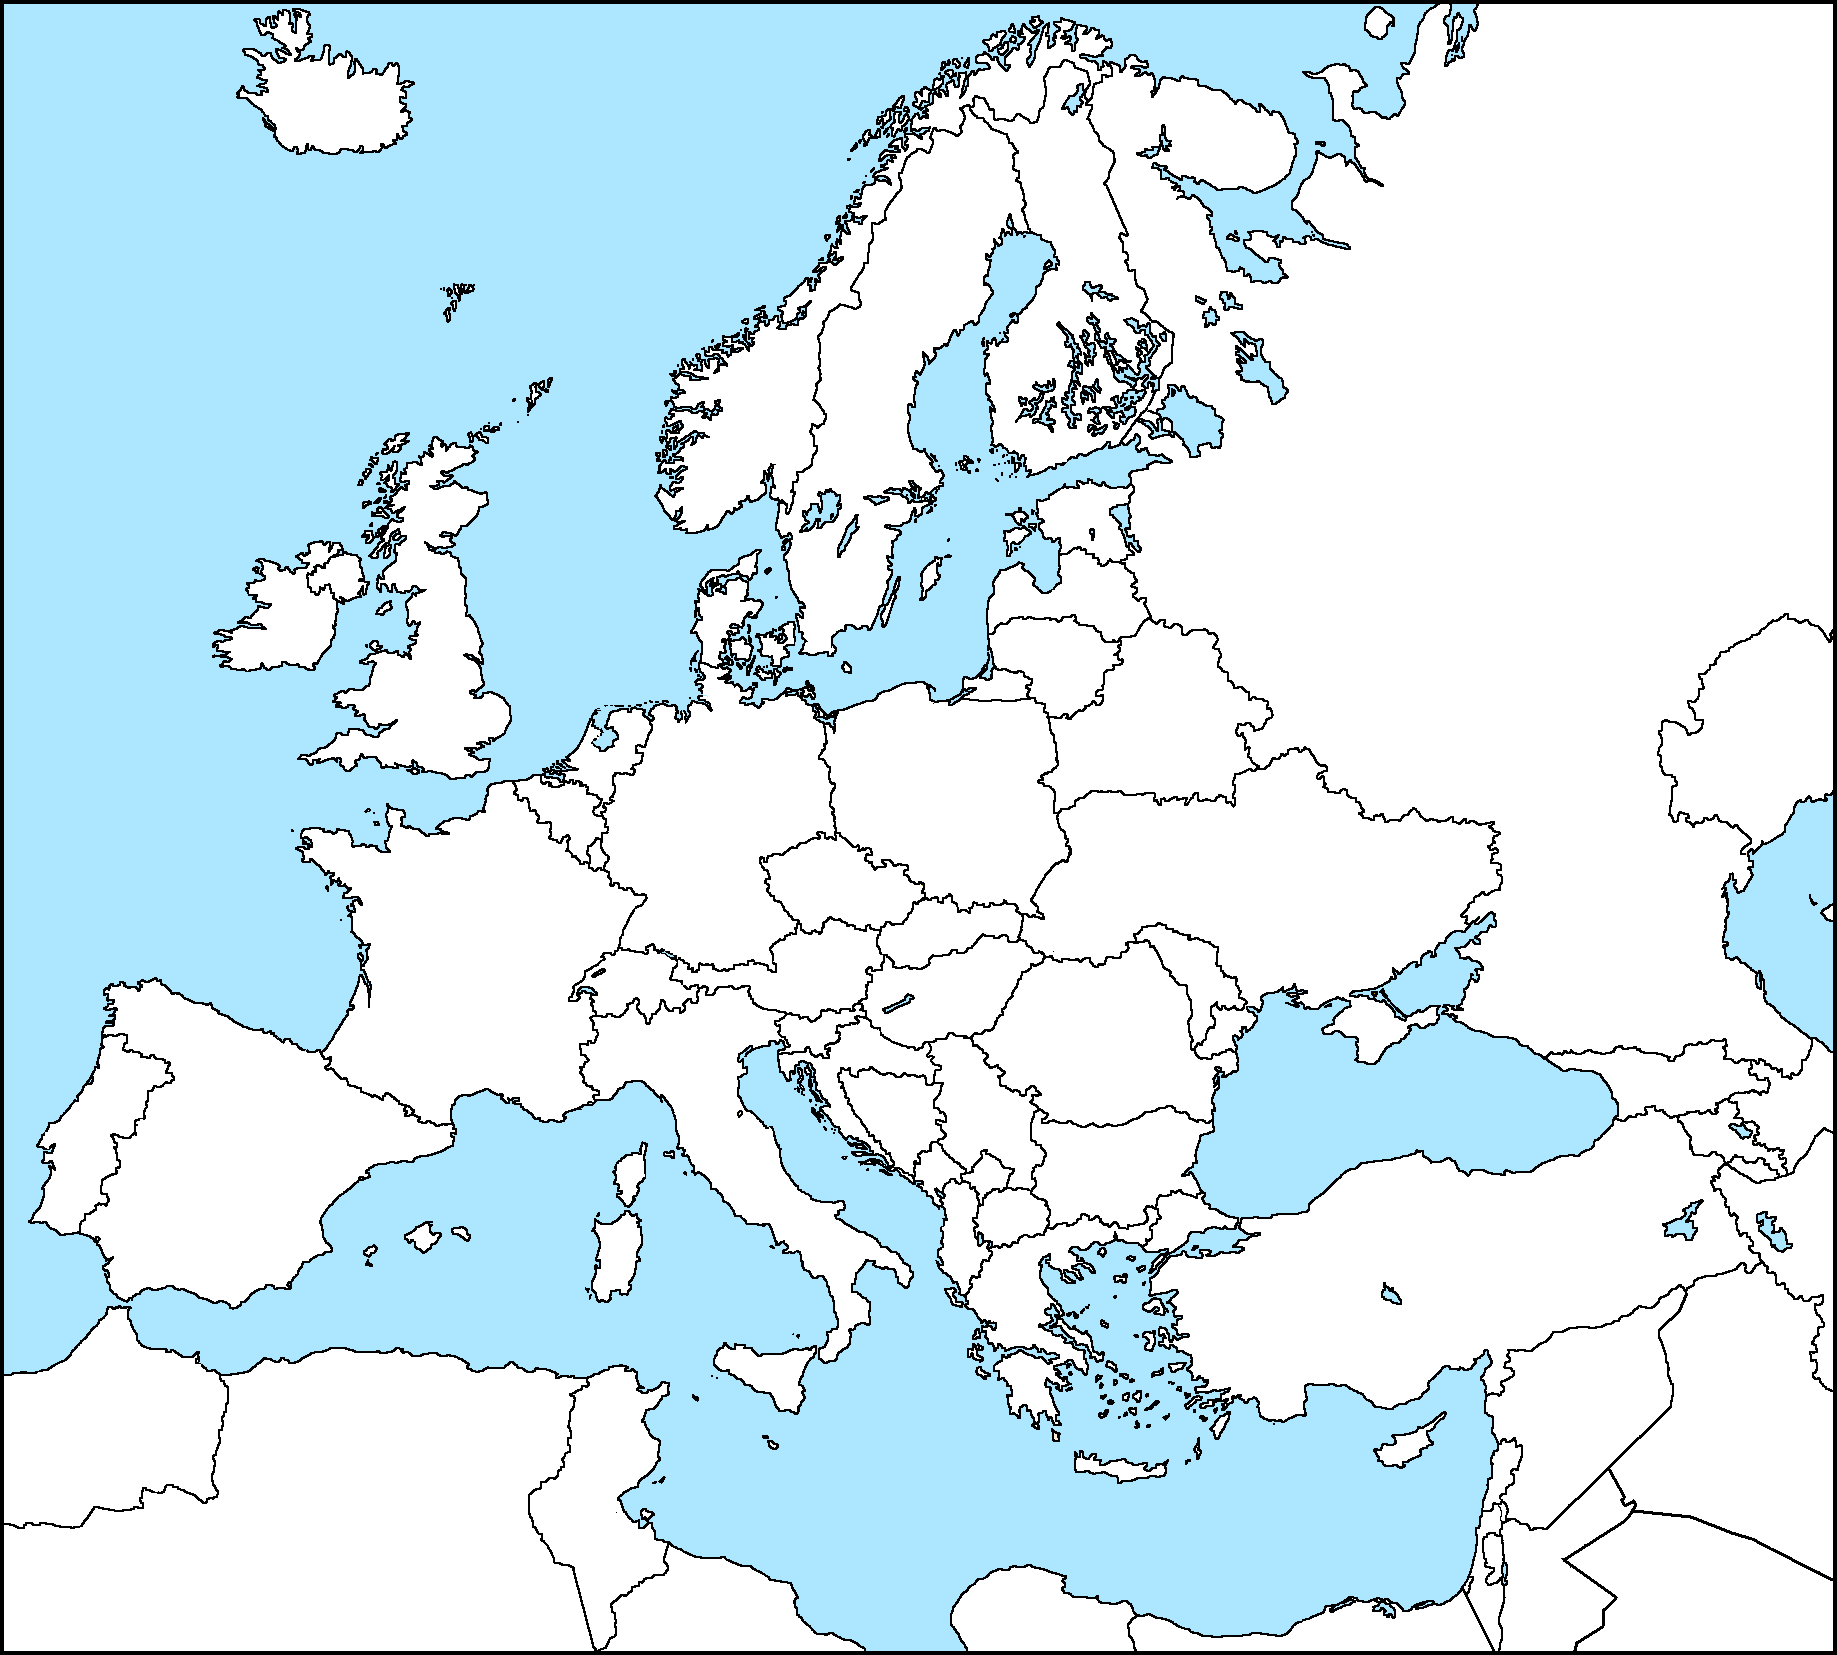 Map Europe 2016.Blank Map Of Europe 2015 By Xgeograd On Deviantart